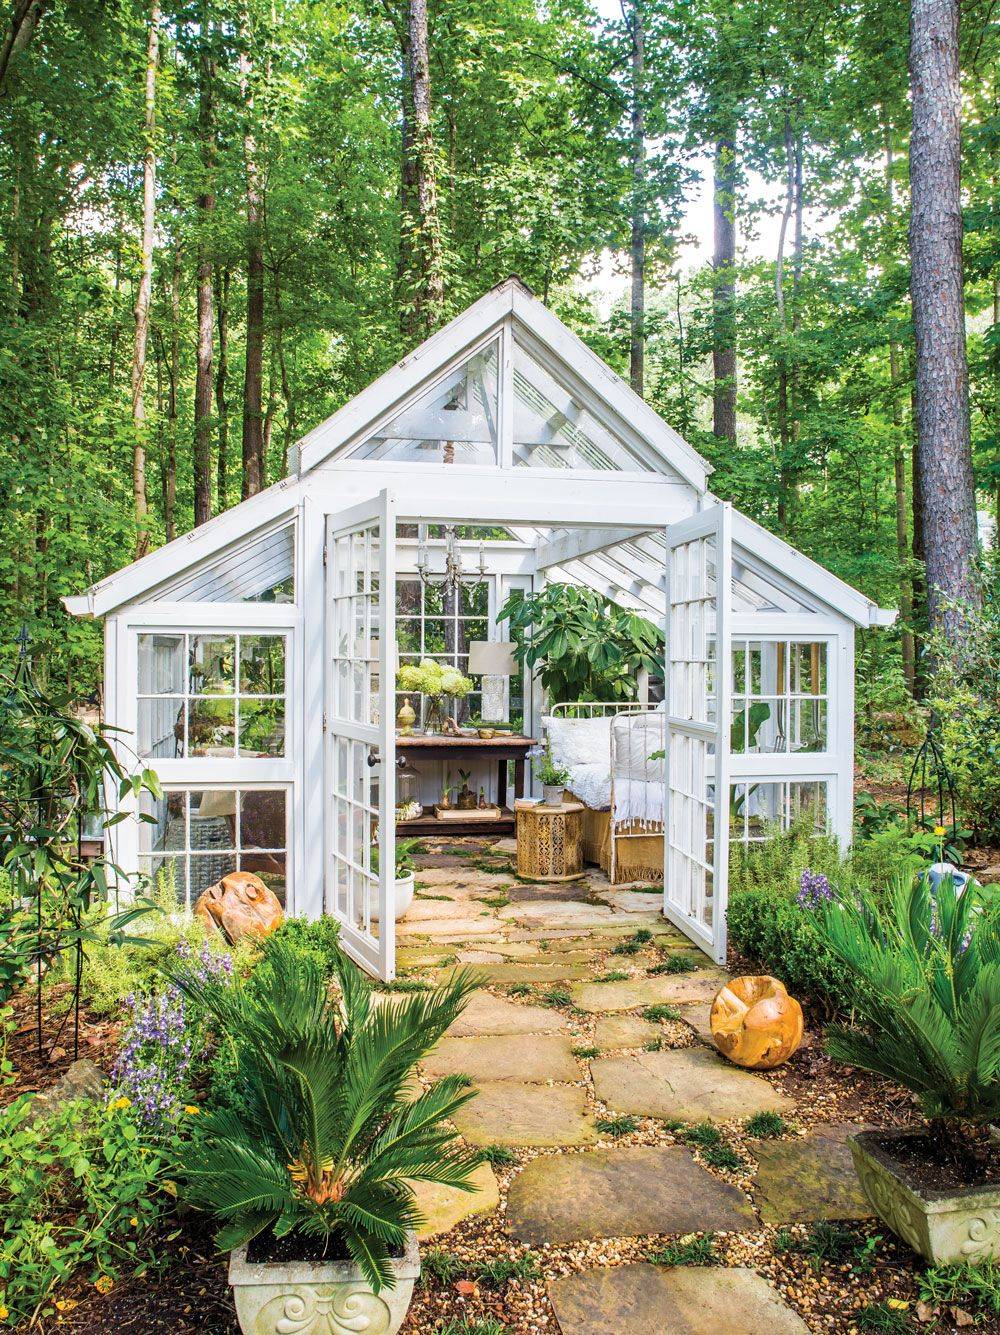 Room Envy: This glass garden house in Marietta is a relaxing retreat - Atlanta Magazine